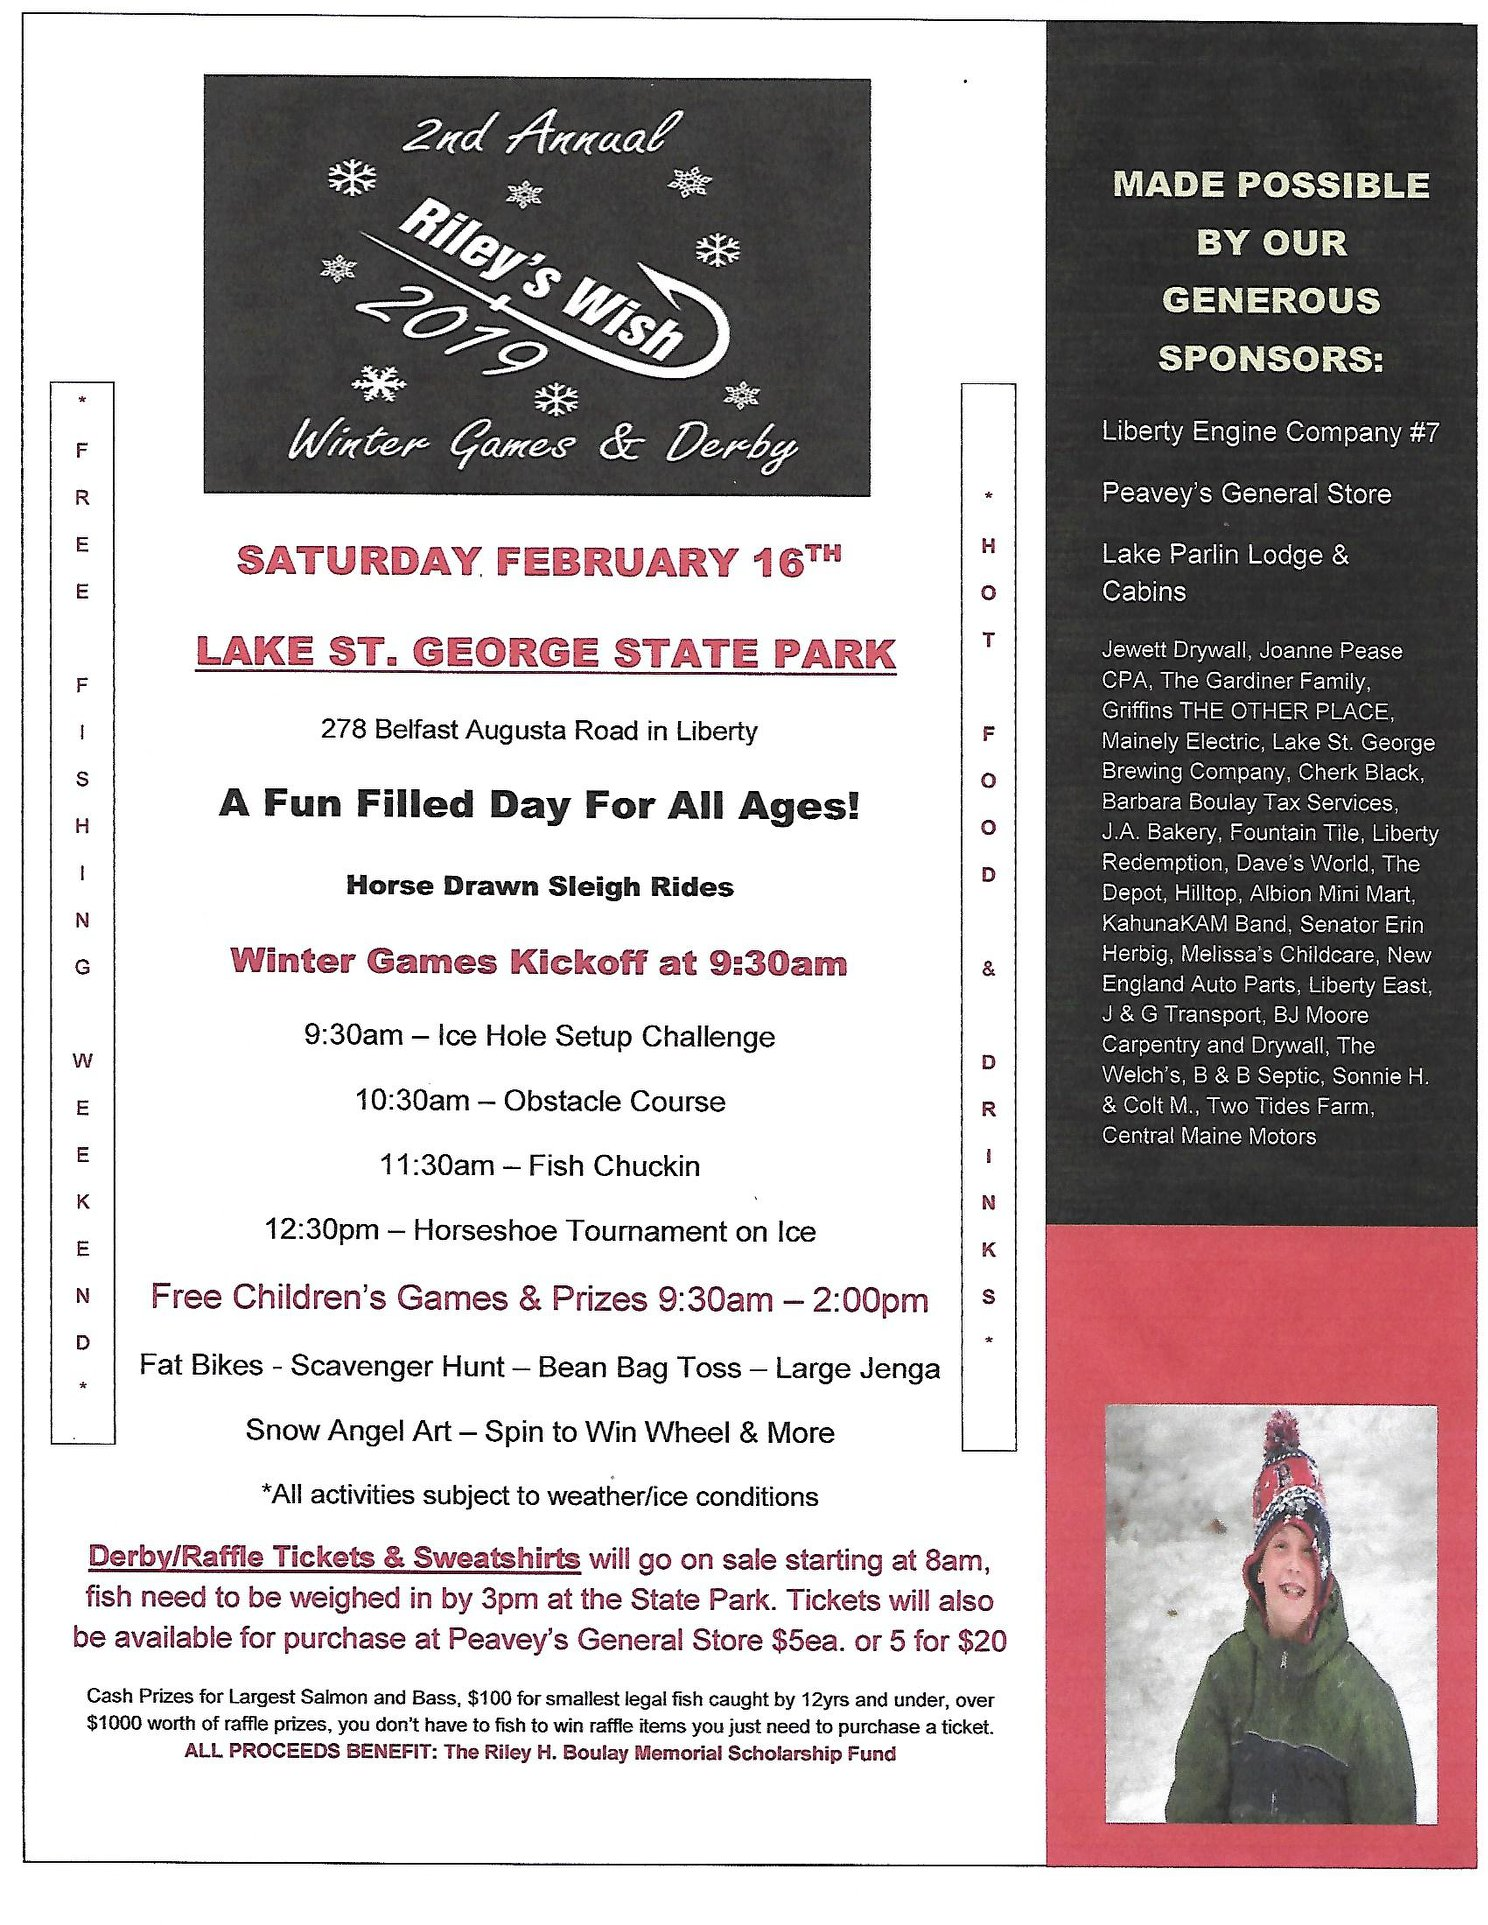 2nd Annual Riley's Wish Winter Games & Derby